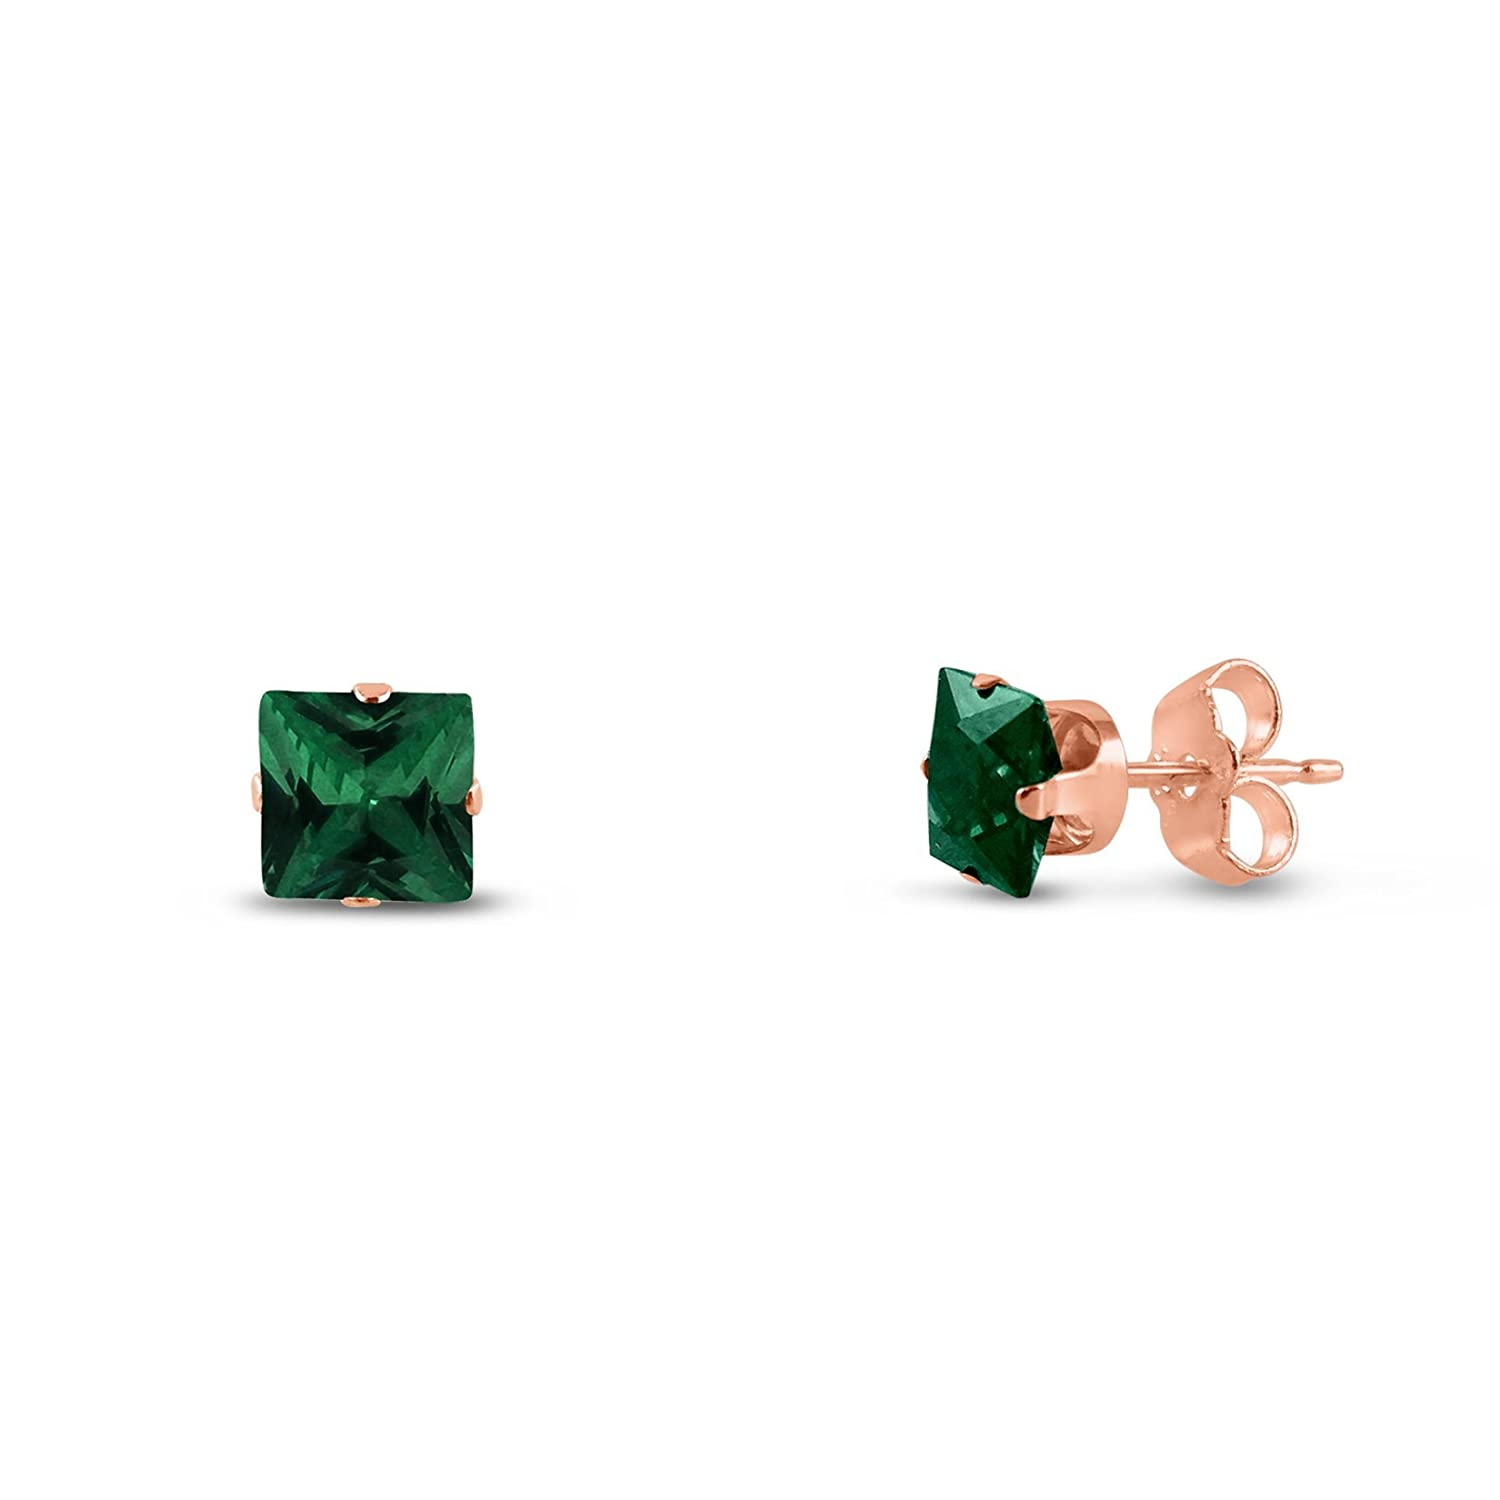 Square 3x3mm Simulated Emerald Green Rose Gold Plated Sterling Silver Stud Earrings